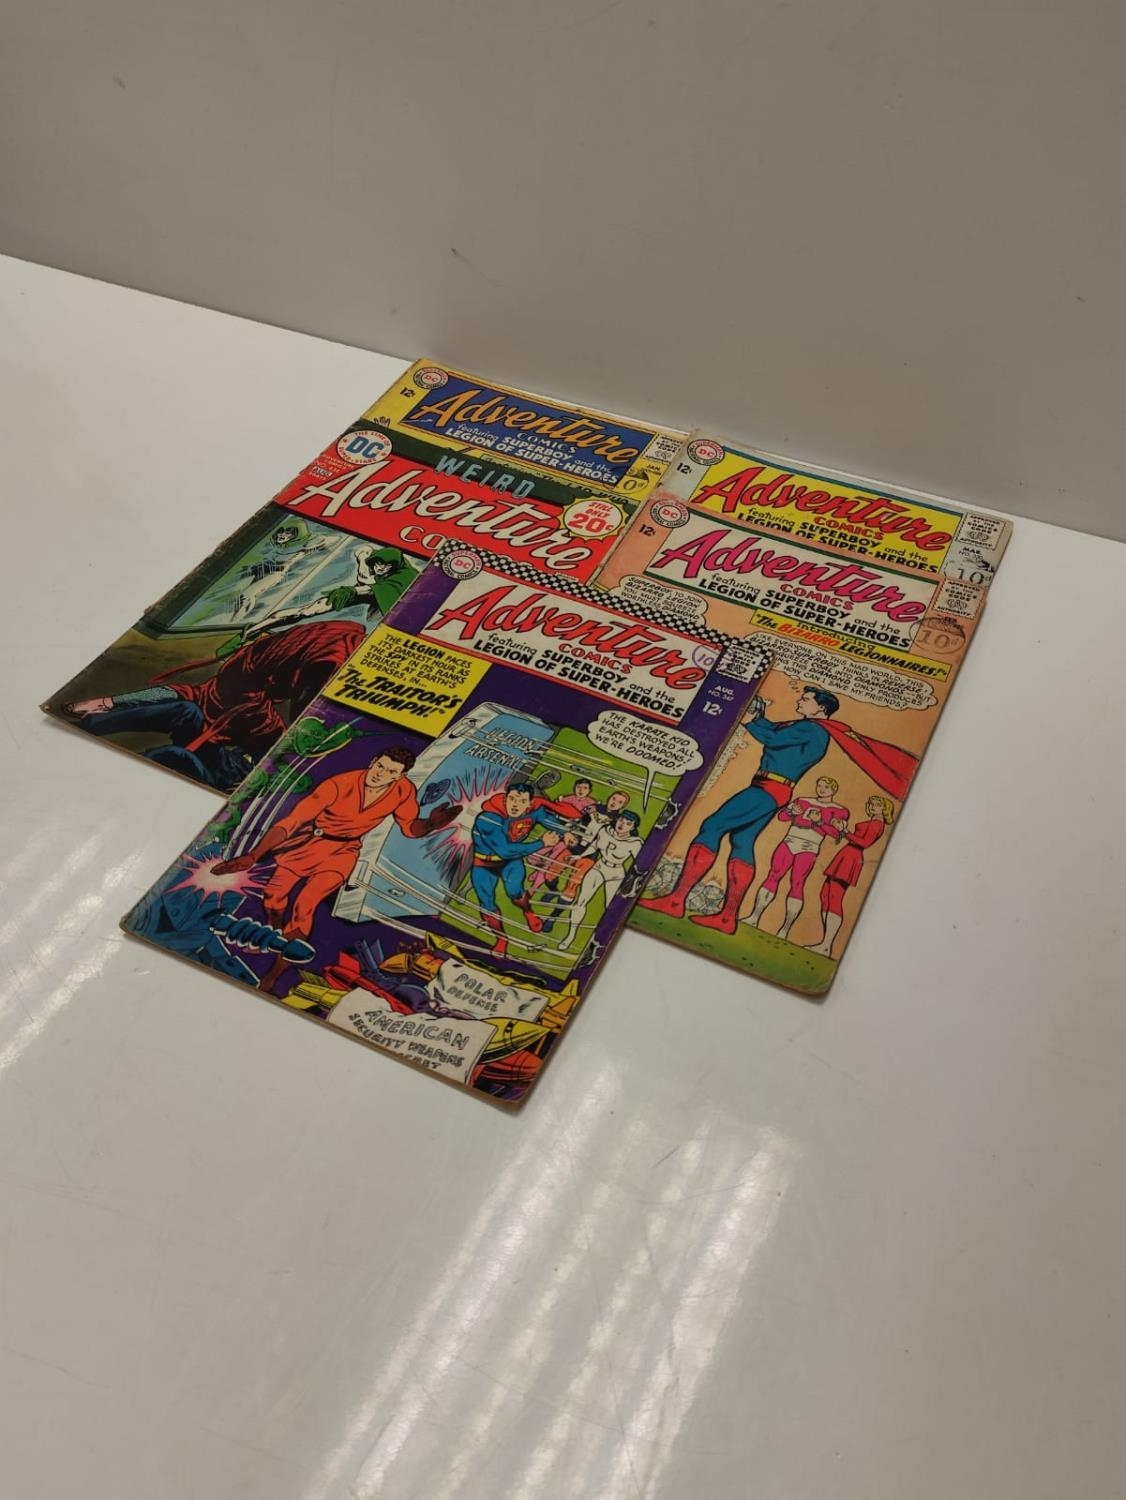 5 editions of DC Adventure Comics featuring Super-boy. - Image 4 of 19